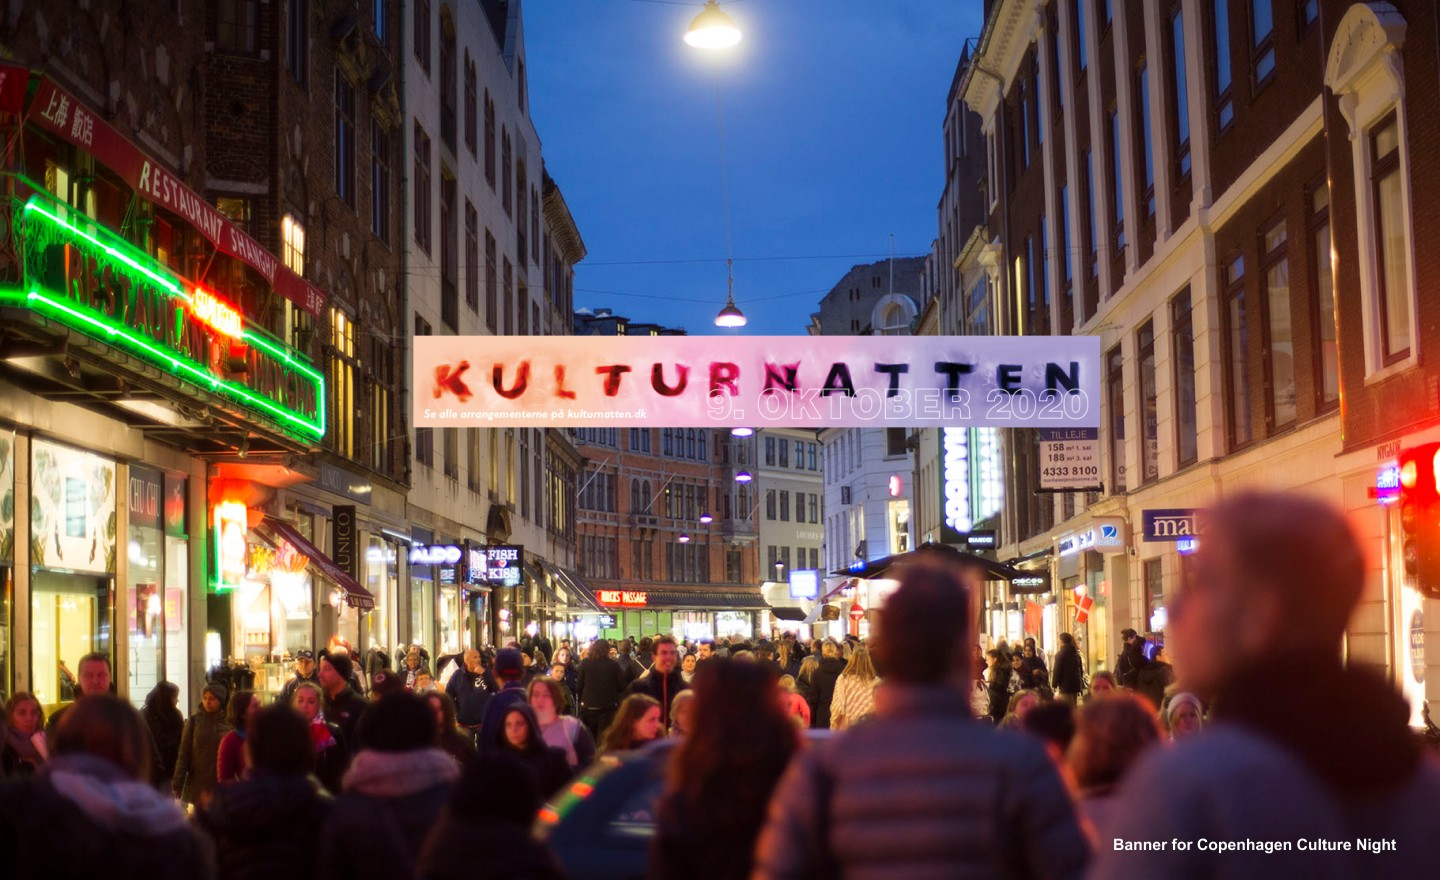 When I studied abroad in Copenhagen, Denmark, I redesigned the VI for the 2020 Copenhagen Culture Night event. For more than 26 years, this event has been one of the most well-attended cultural events in the city - more than 250 museums, theaters, librari